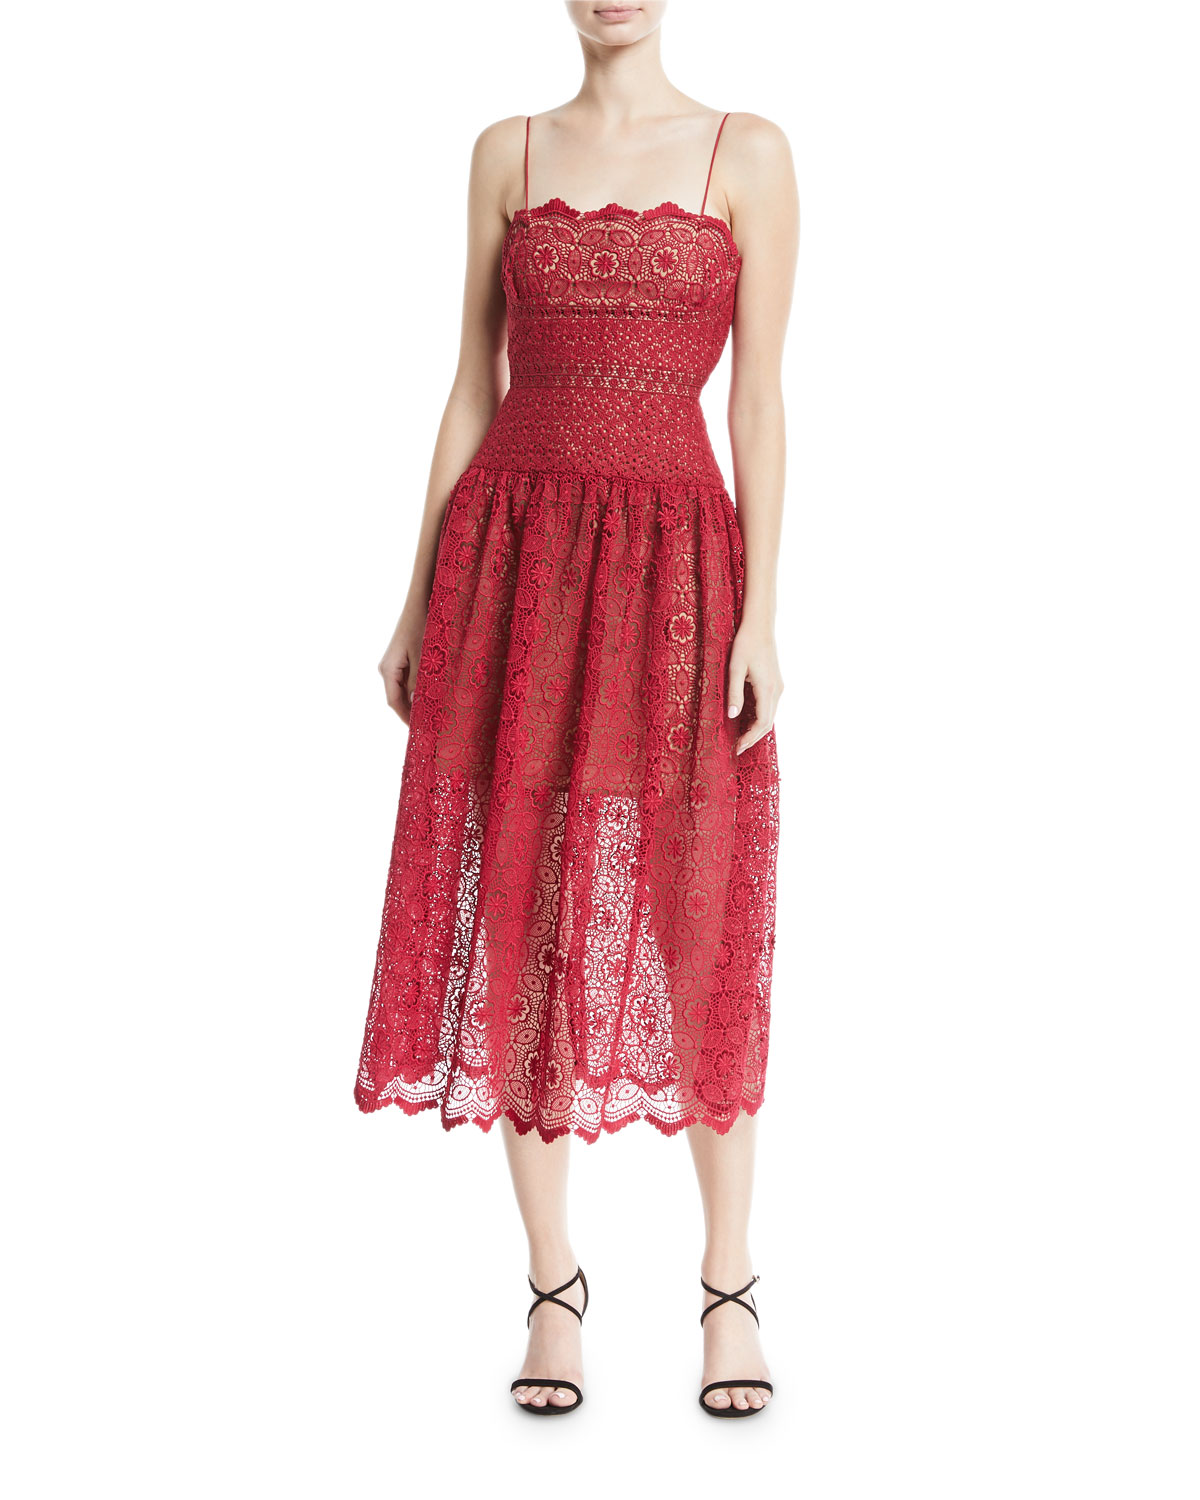 Self Portrait Sleeveless Floral Lace Midi Cocktail Dress